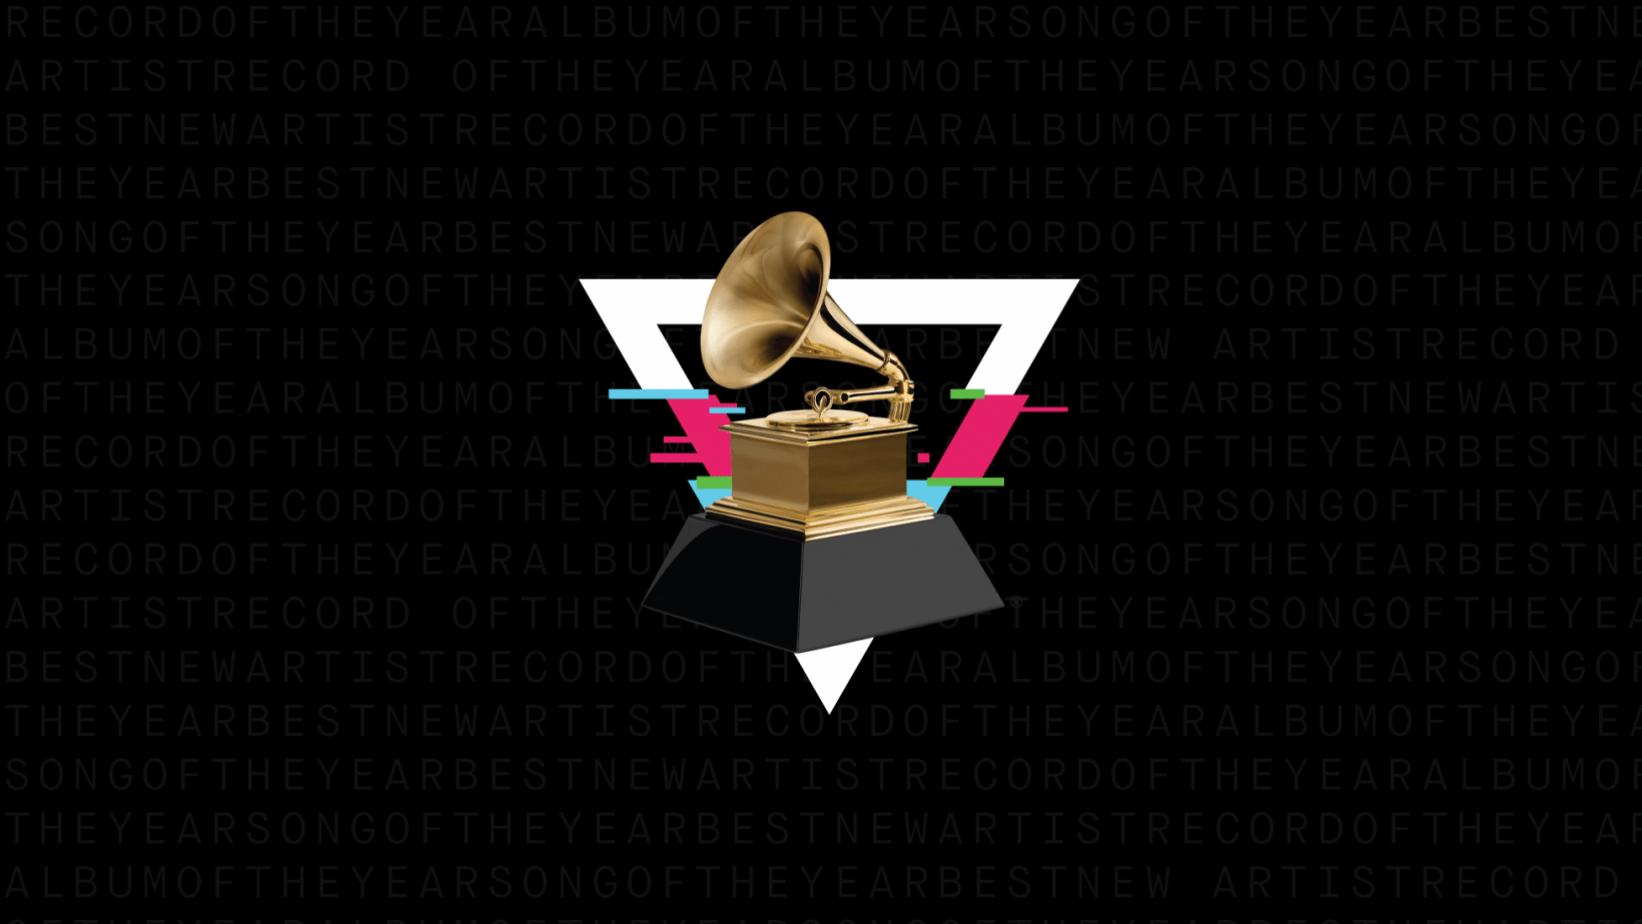 How to Watch Grammys 2020 on DStv